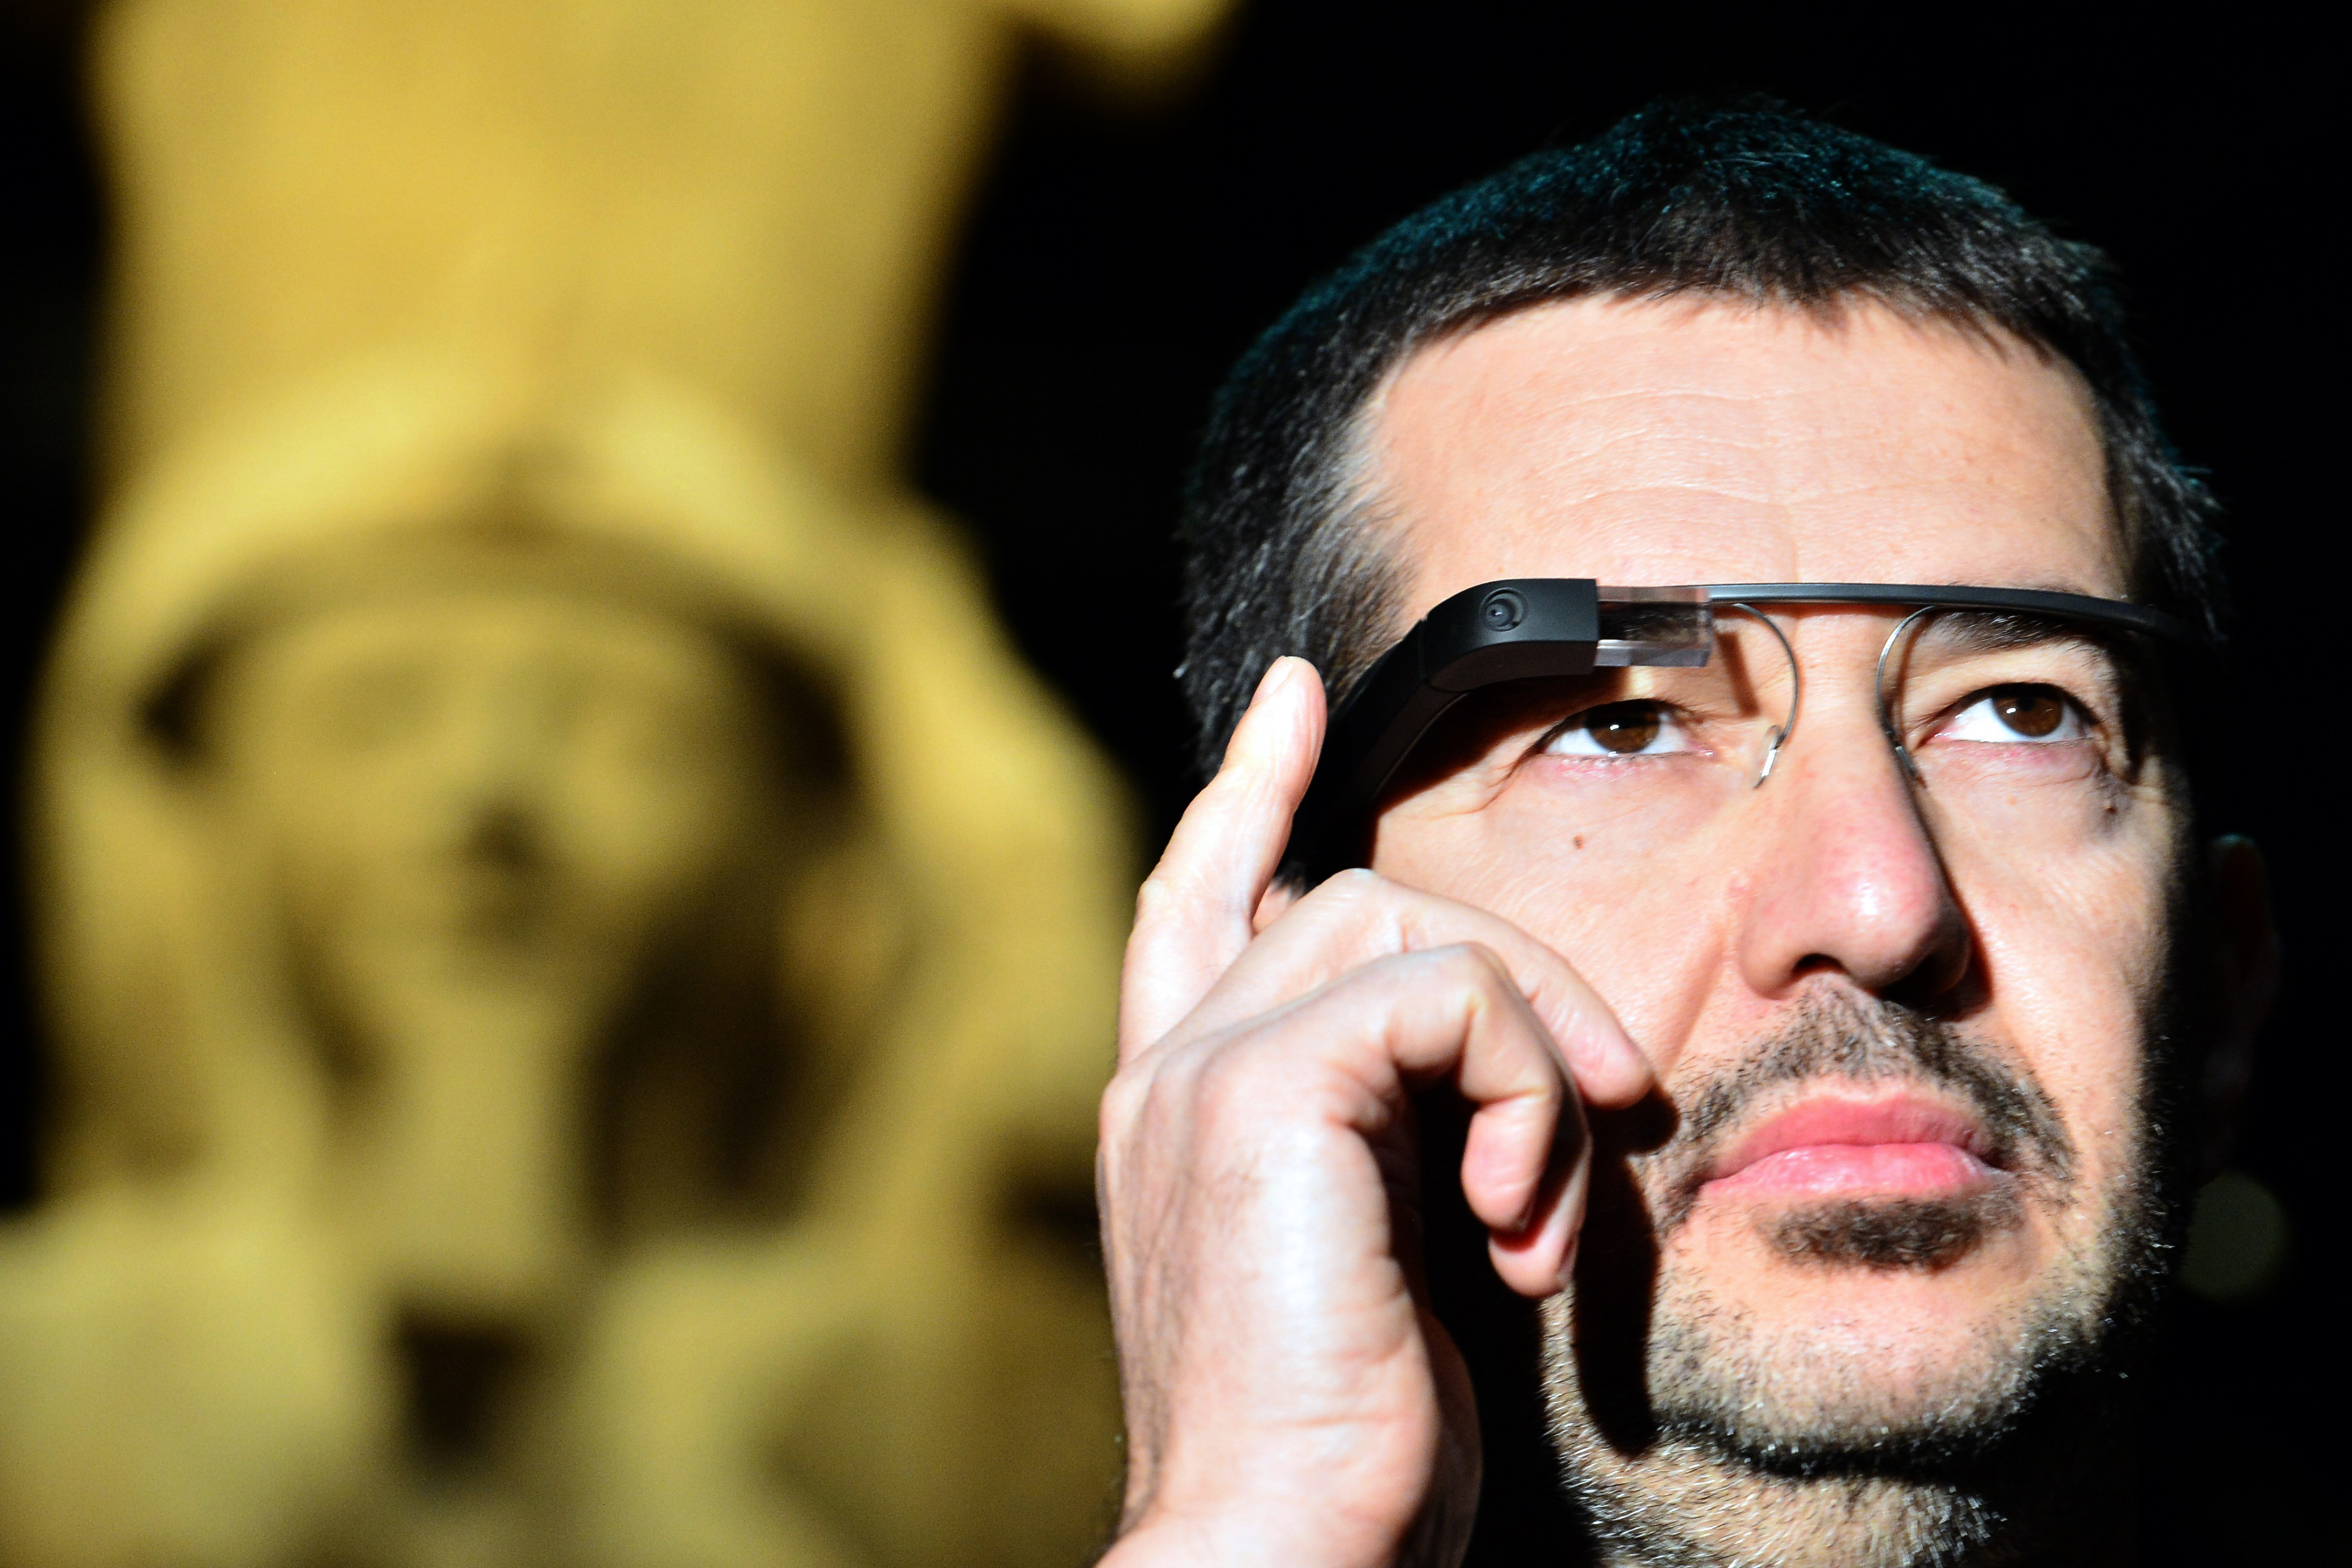 ITALY-EGYPT-MUSEUM-TECHNOLOGY-GOOGLE-GLASS